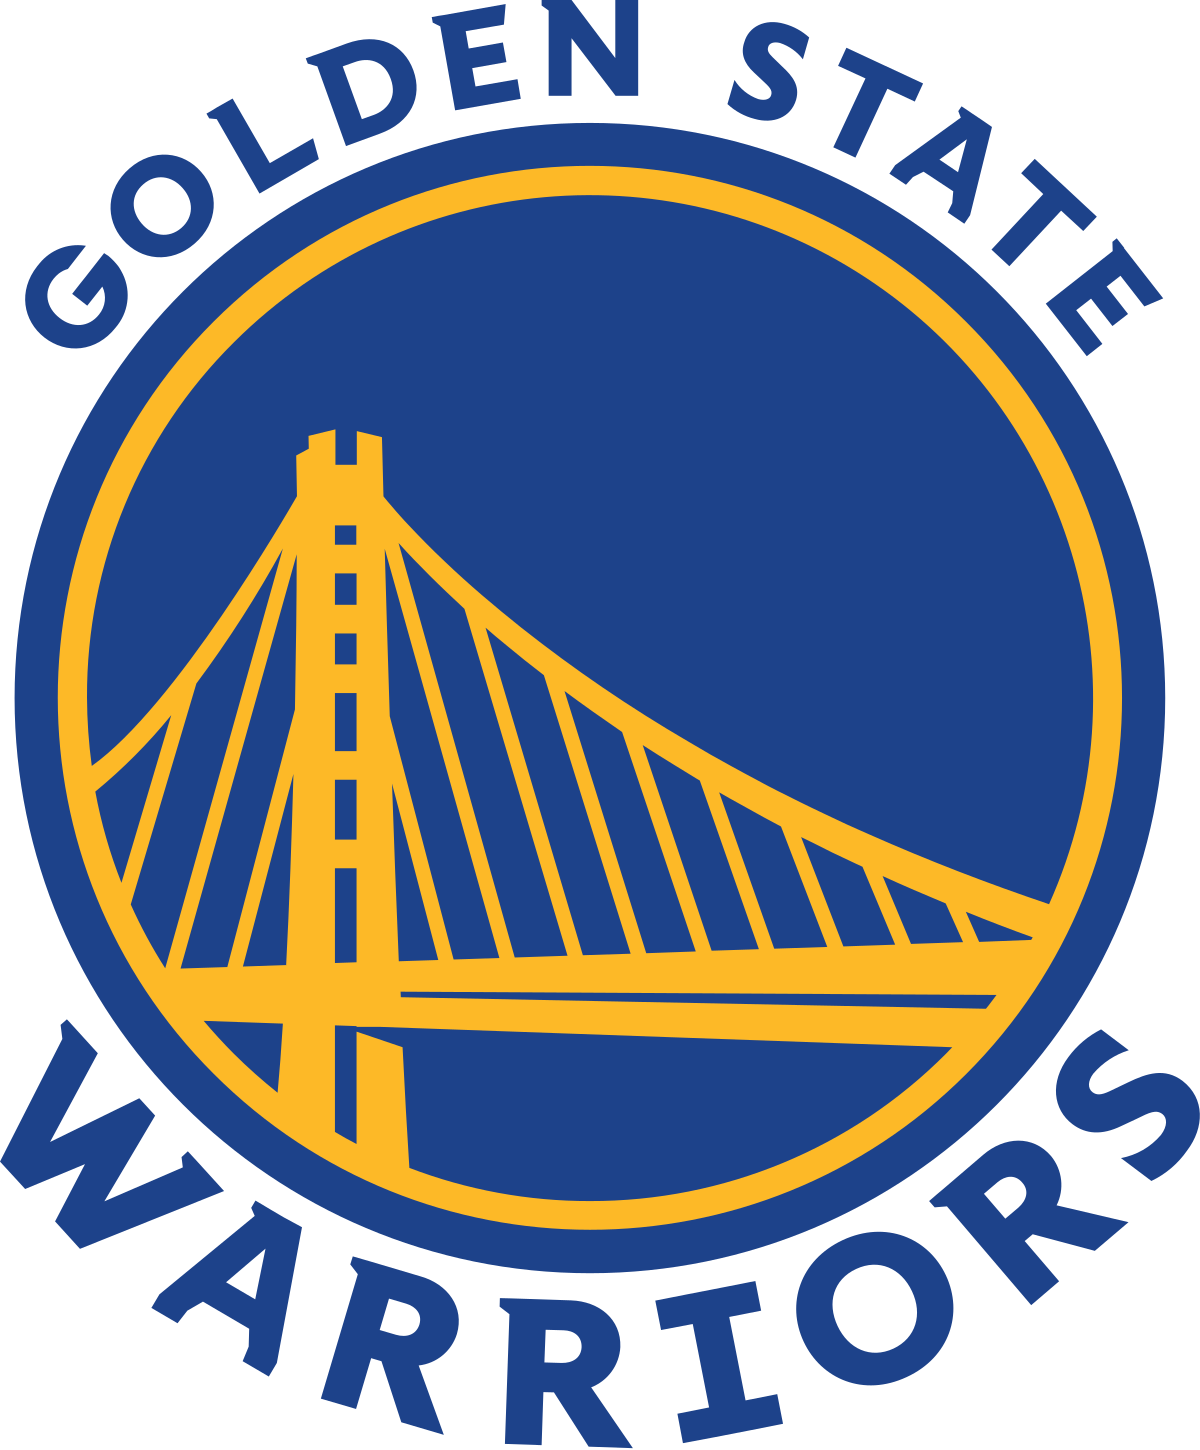 warriors logo clipart 2009